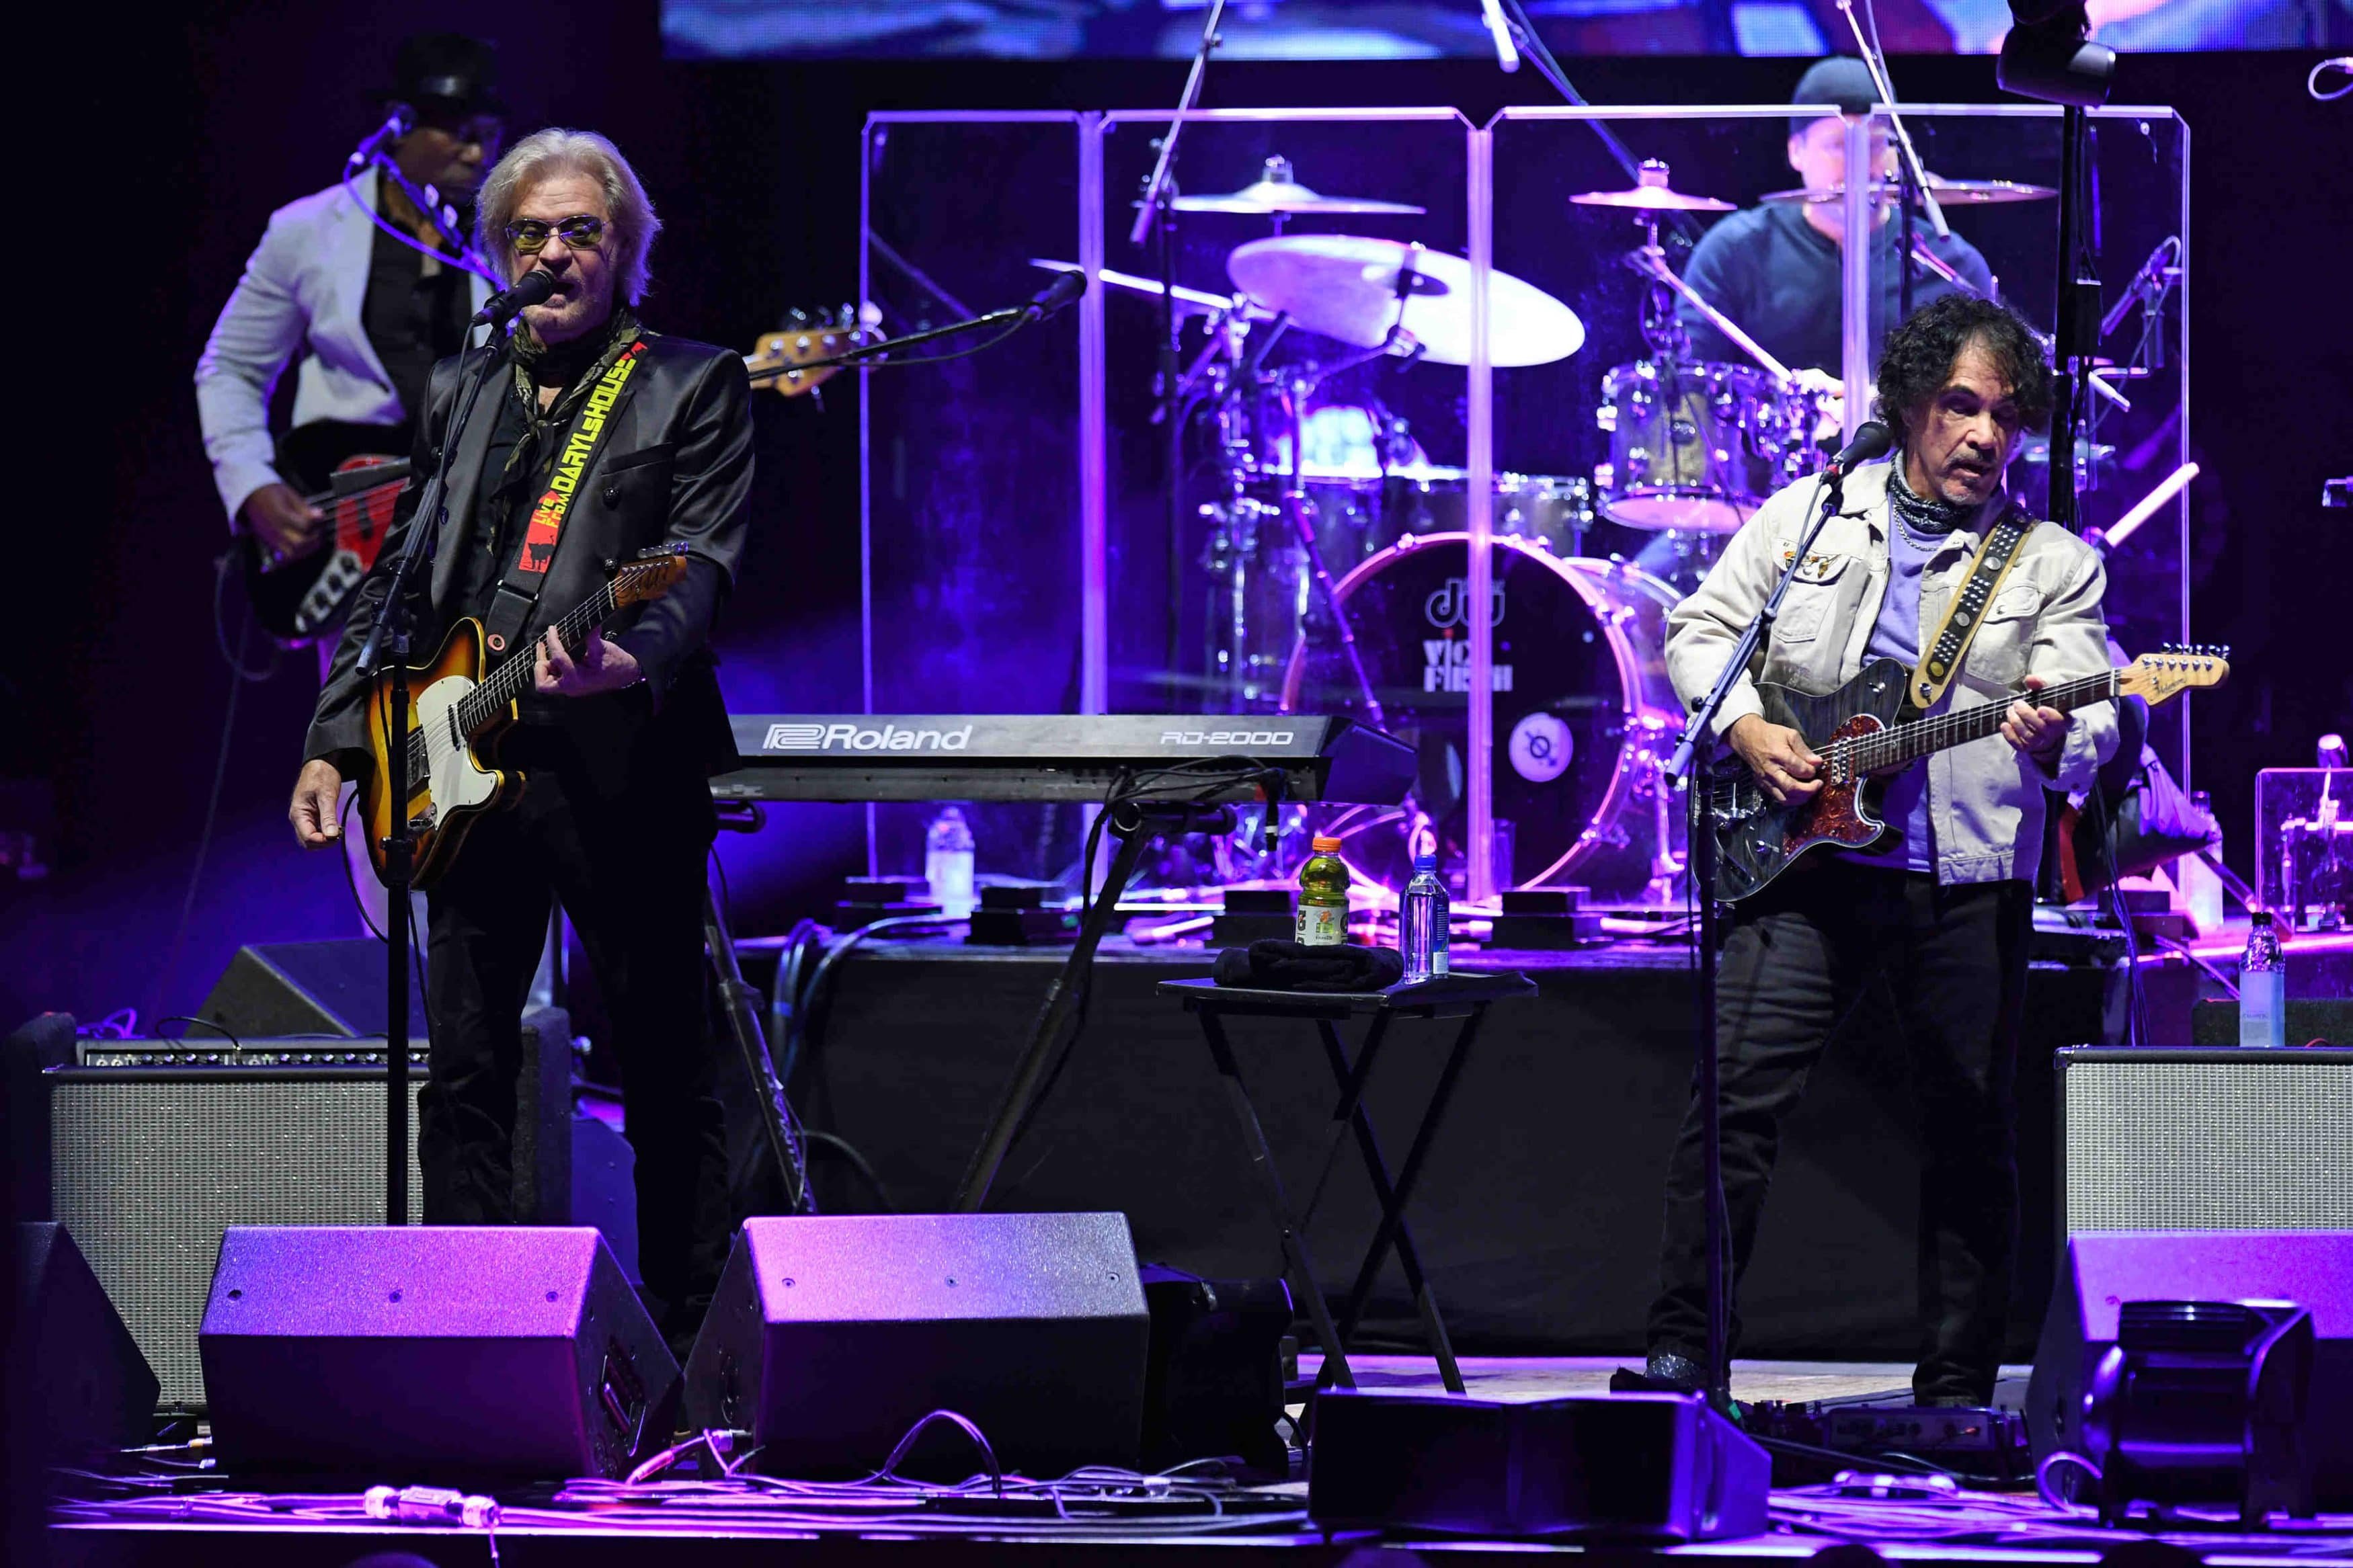 Hall and Oates take the stage in Hollywood, Florida.